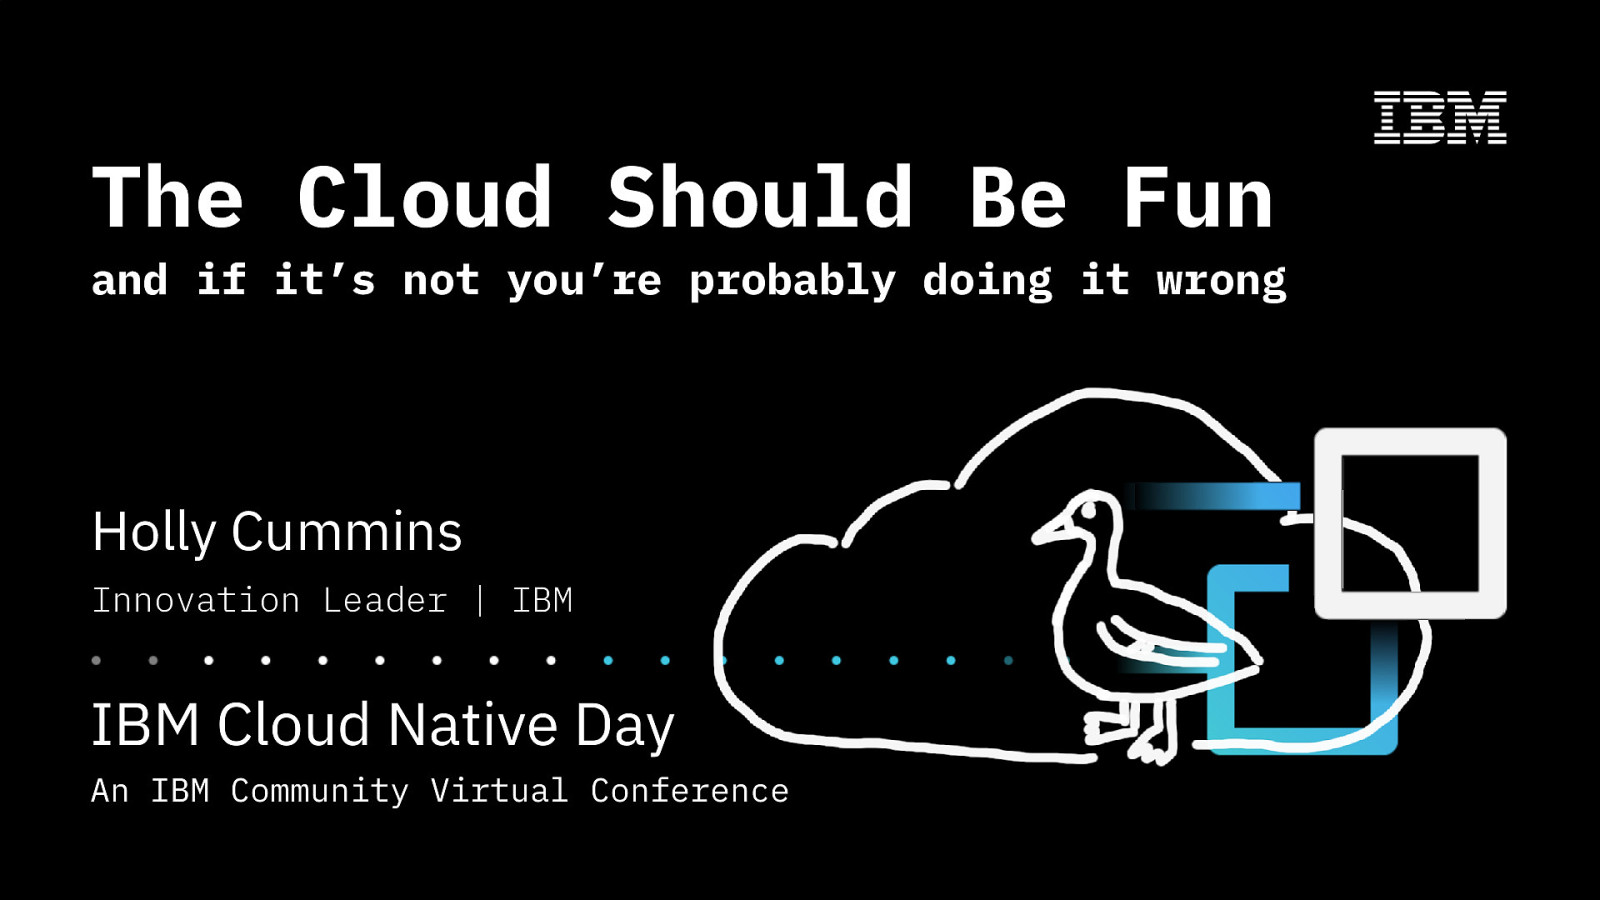 The Cloud Should Be Fun - and If It's Not You're Probably Doing It Wrong